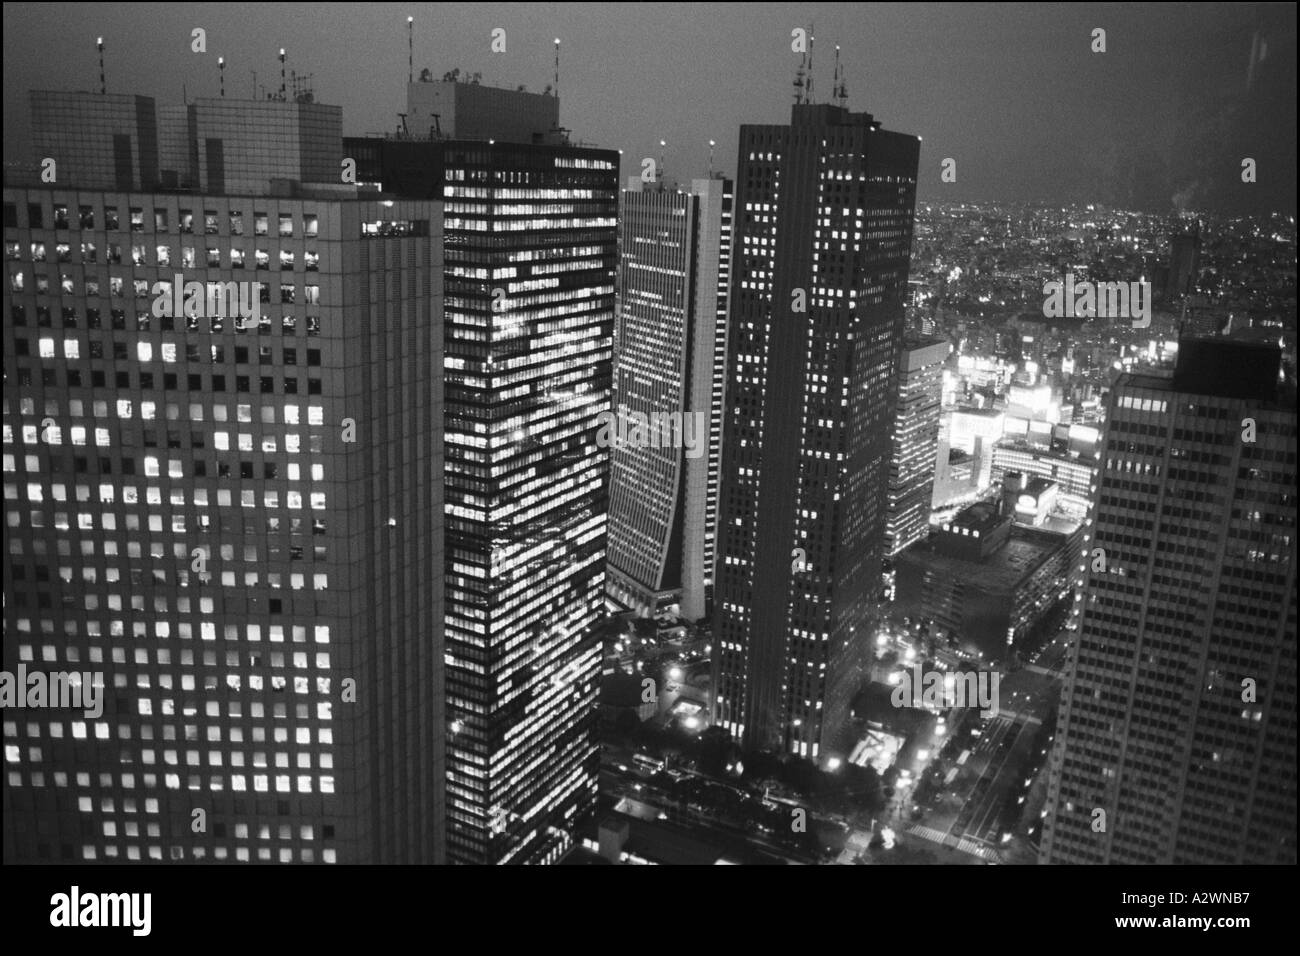 Skyscraper District Nishi Shinjuku Seen At Night From The Top Of Governement Building Number 1 Tokyo Japan